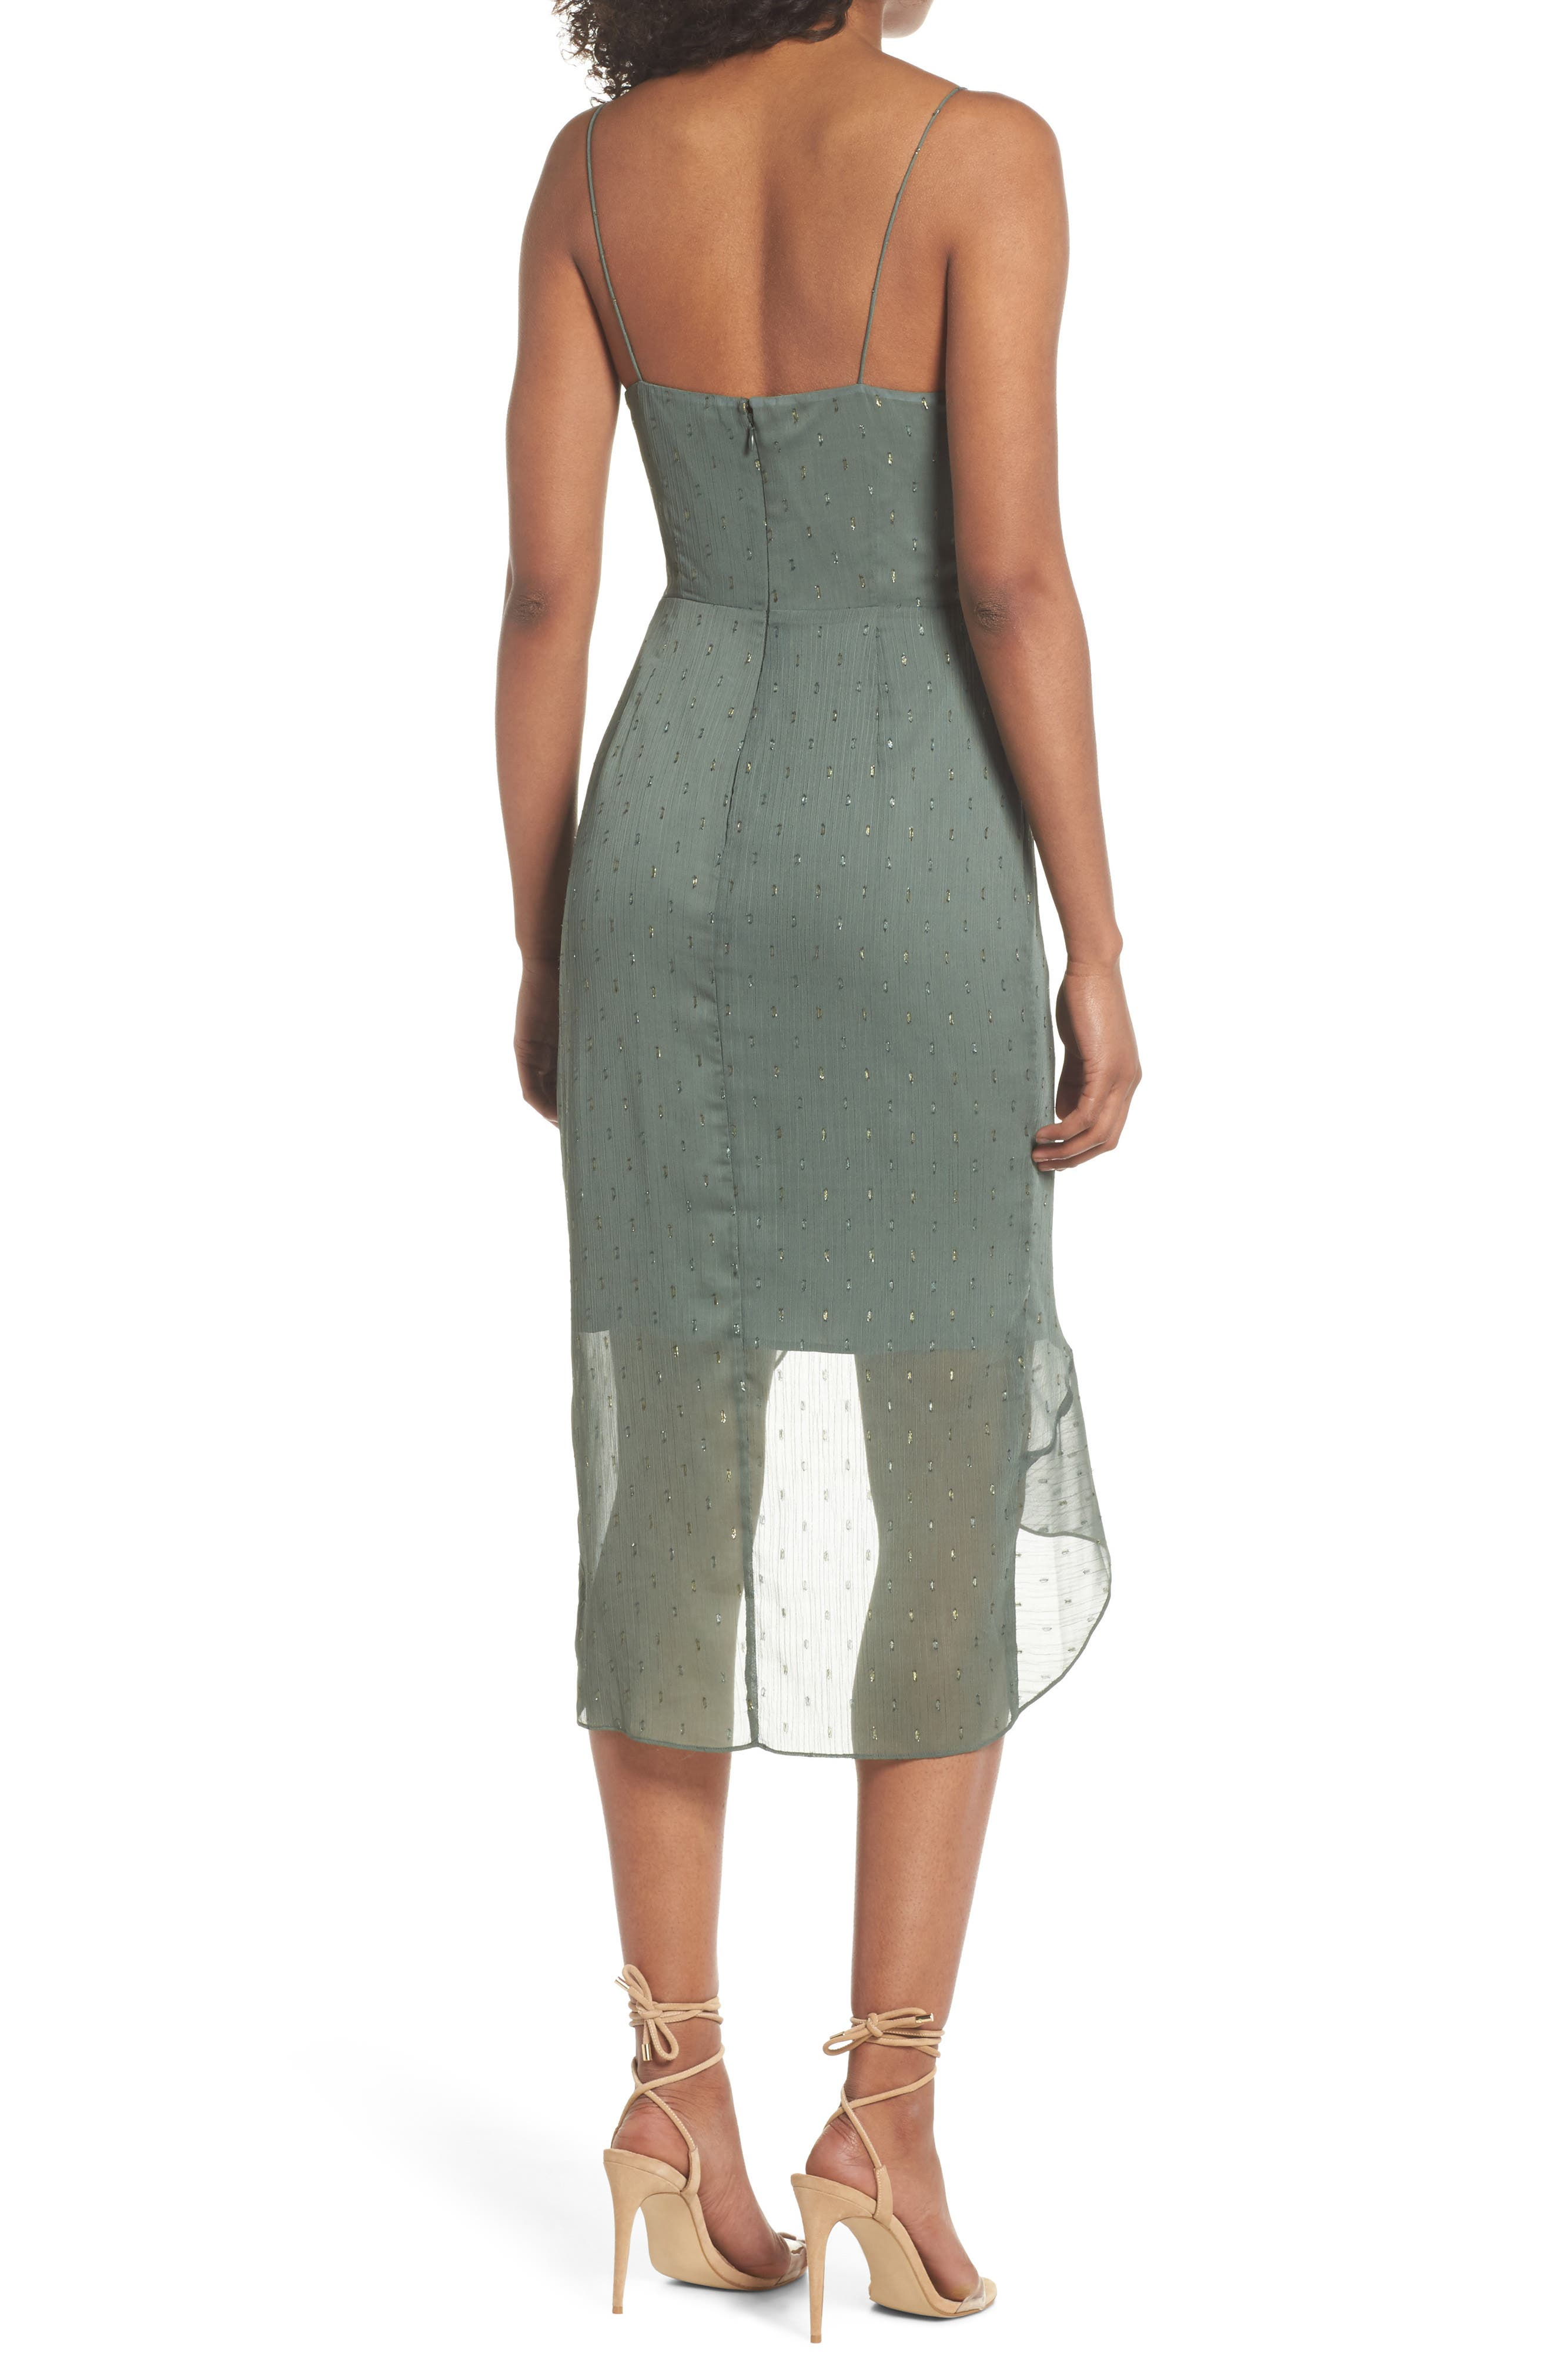 COOPER ST,                             Wind In The Willows Drape Dress,                             Alternate thumbnail 2, color,                             325